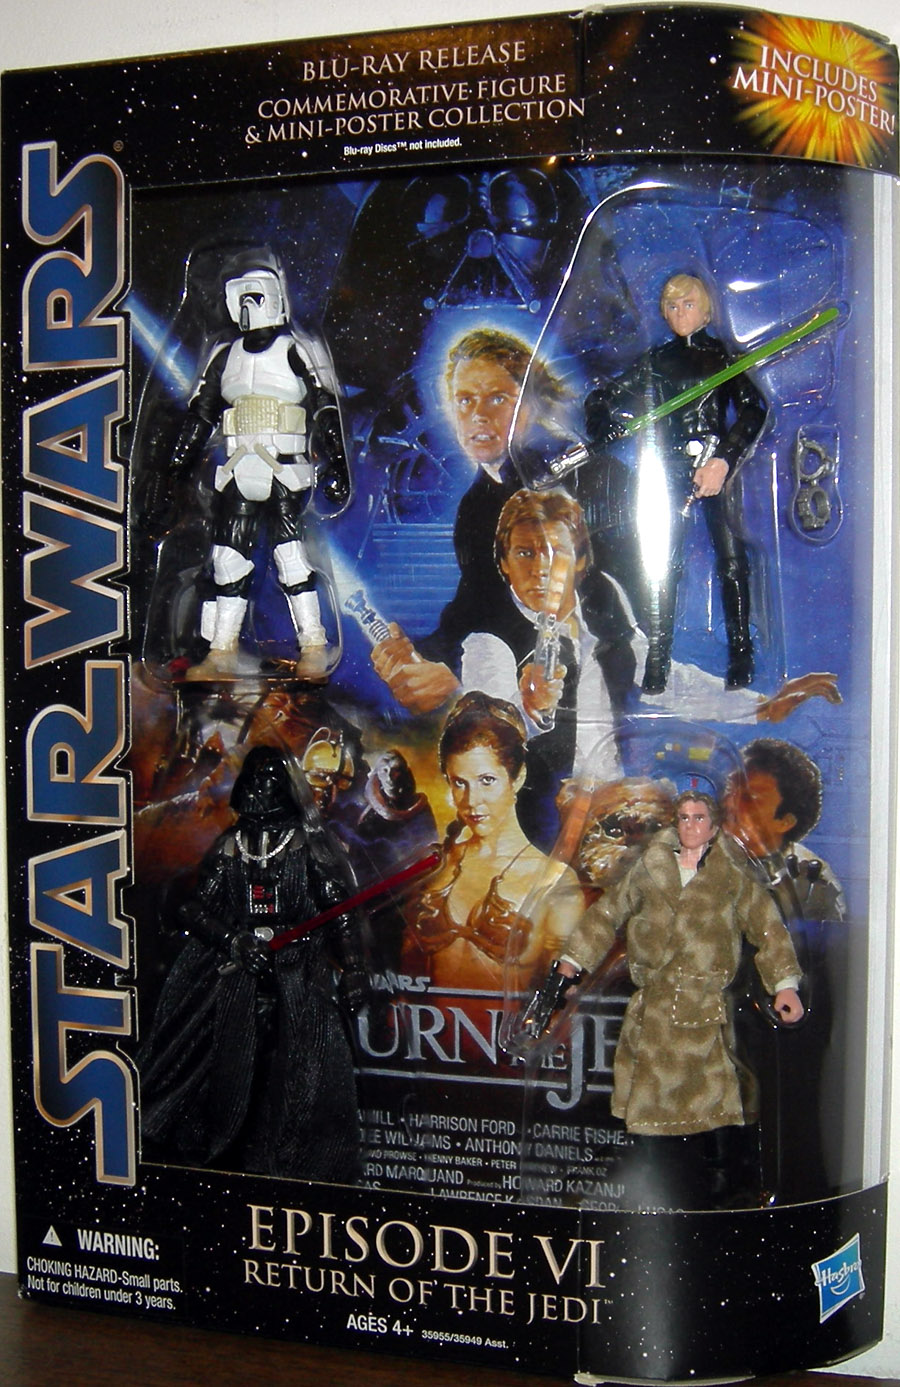 Star Wars Blu-Ray Release Commemorative Action Figures Mini-Poster  Collection Episode VI